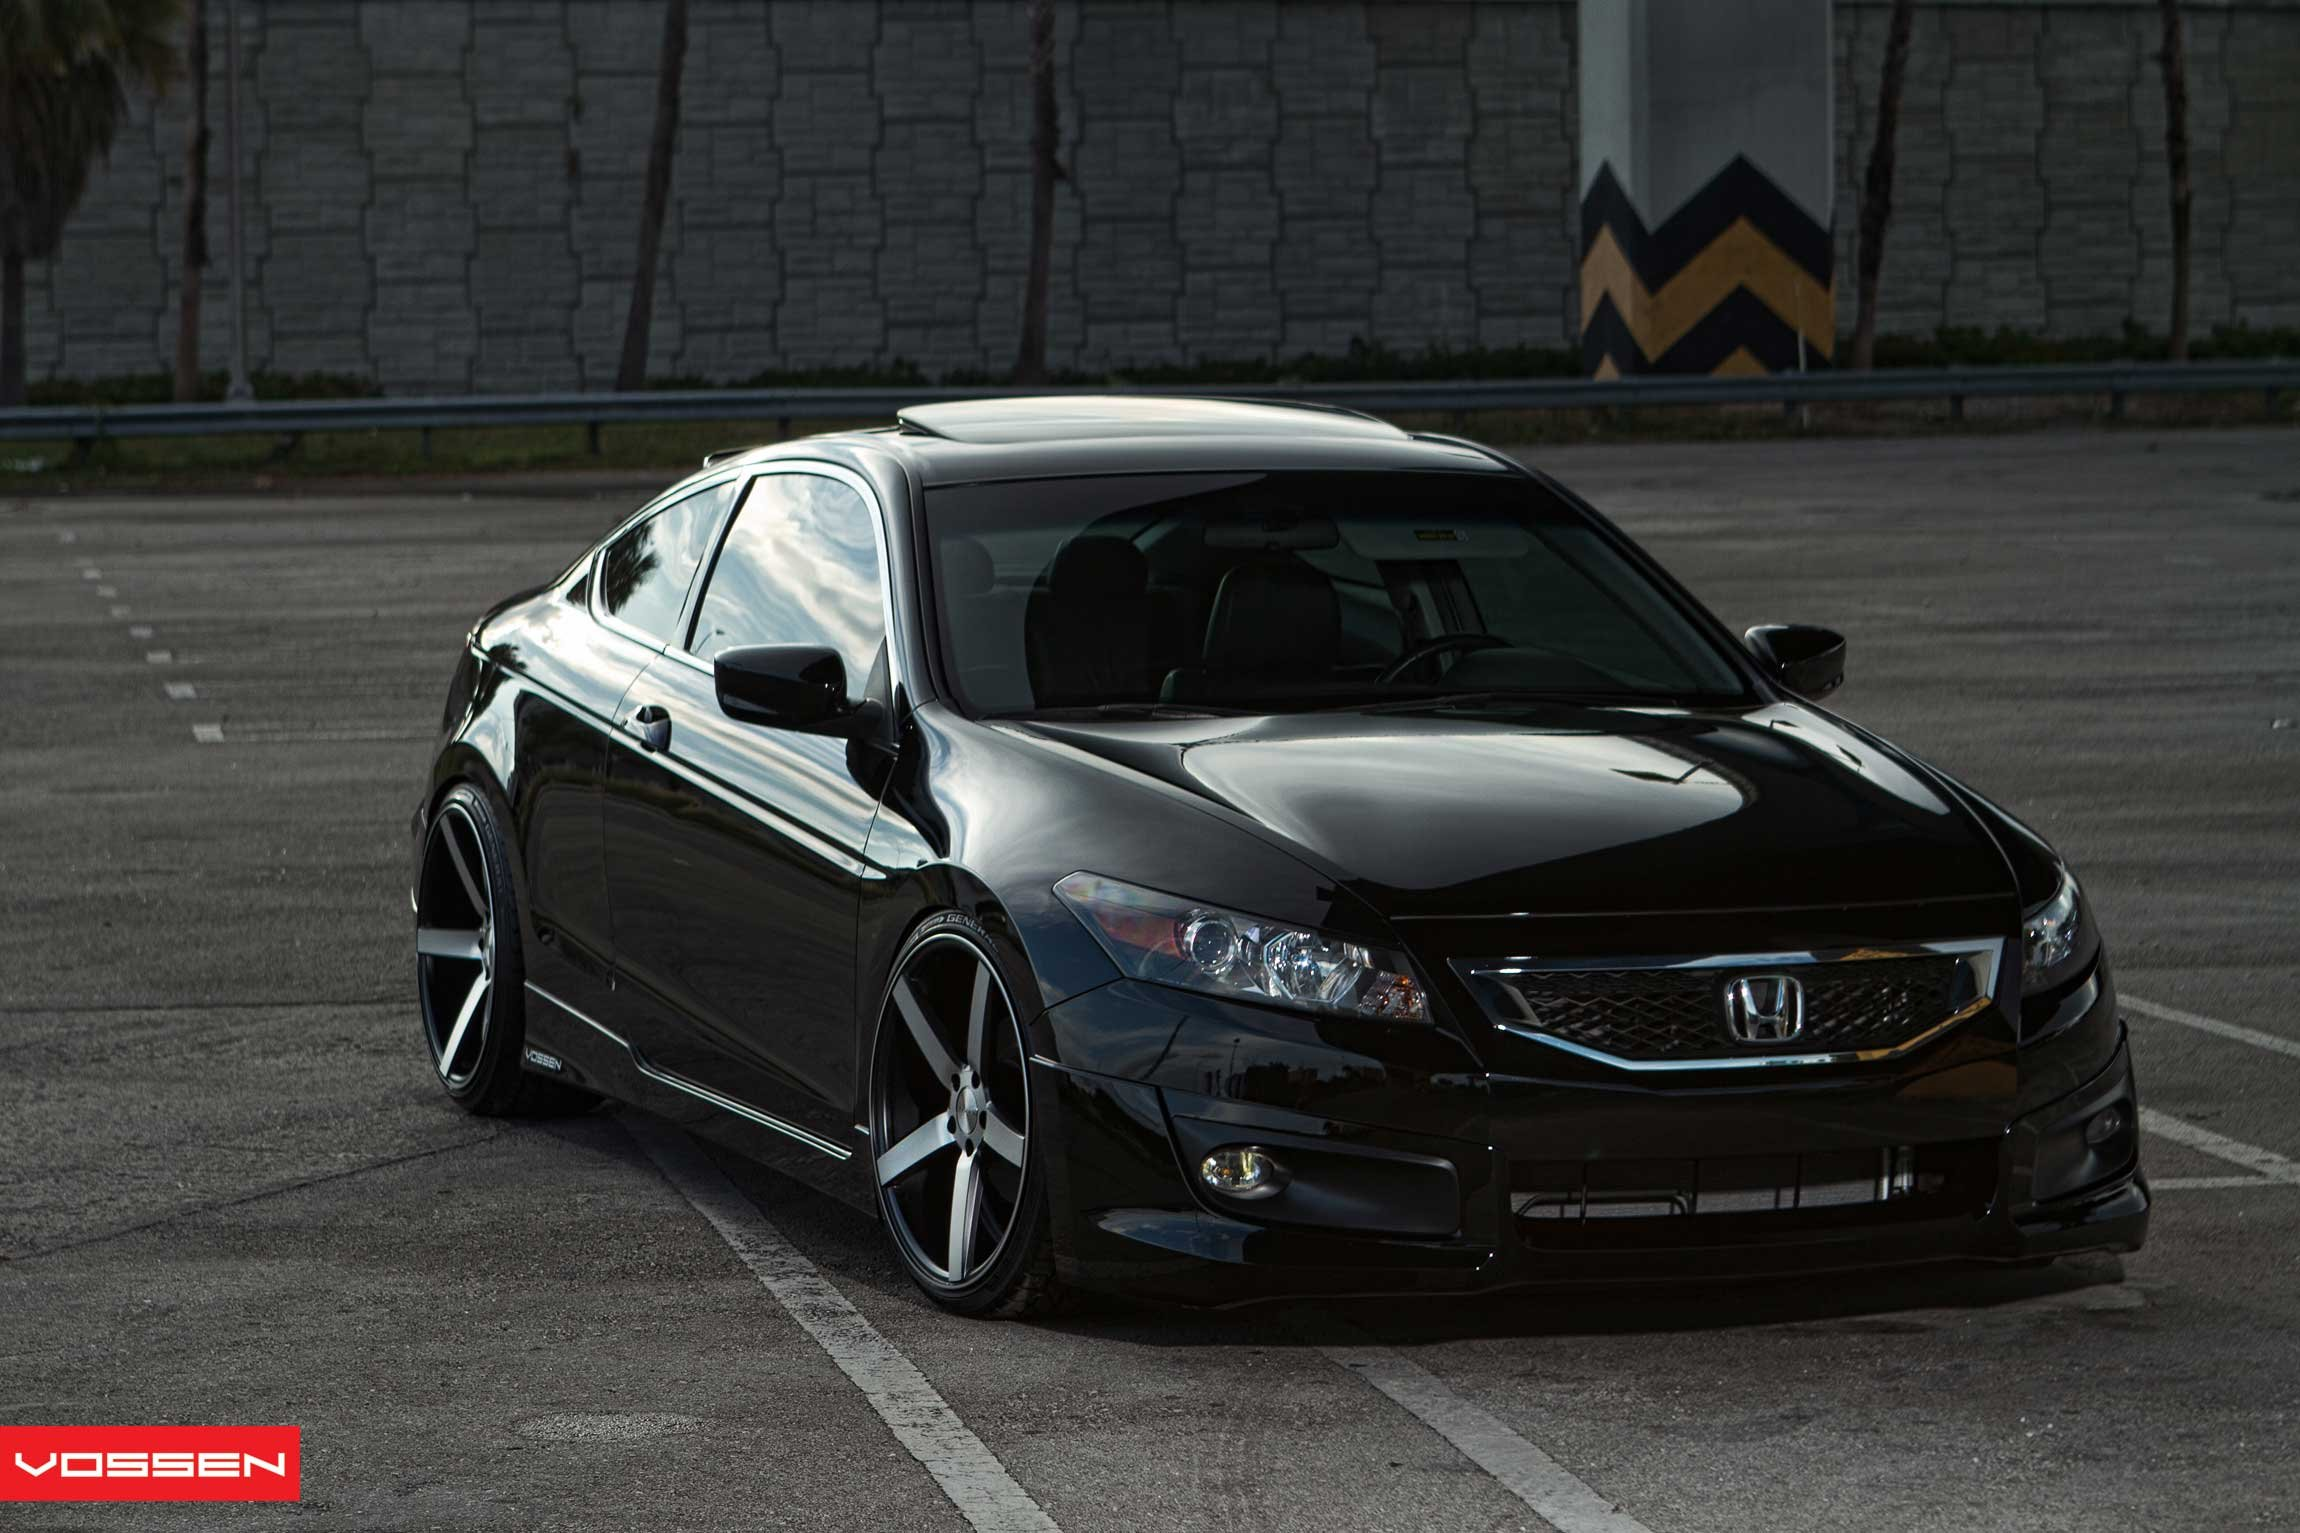 Honda Accord Wallpaper 2300x1533 372897 Wallpaperup